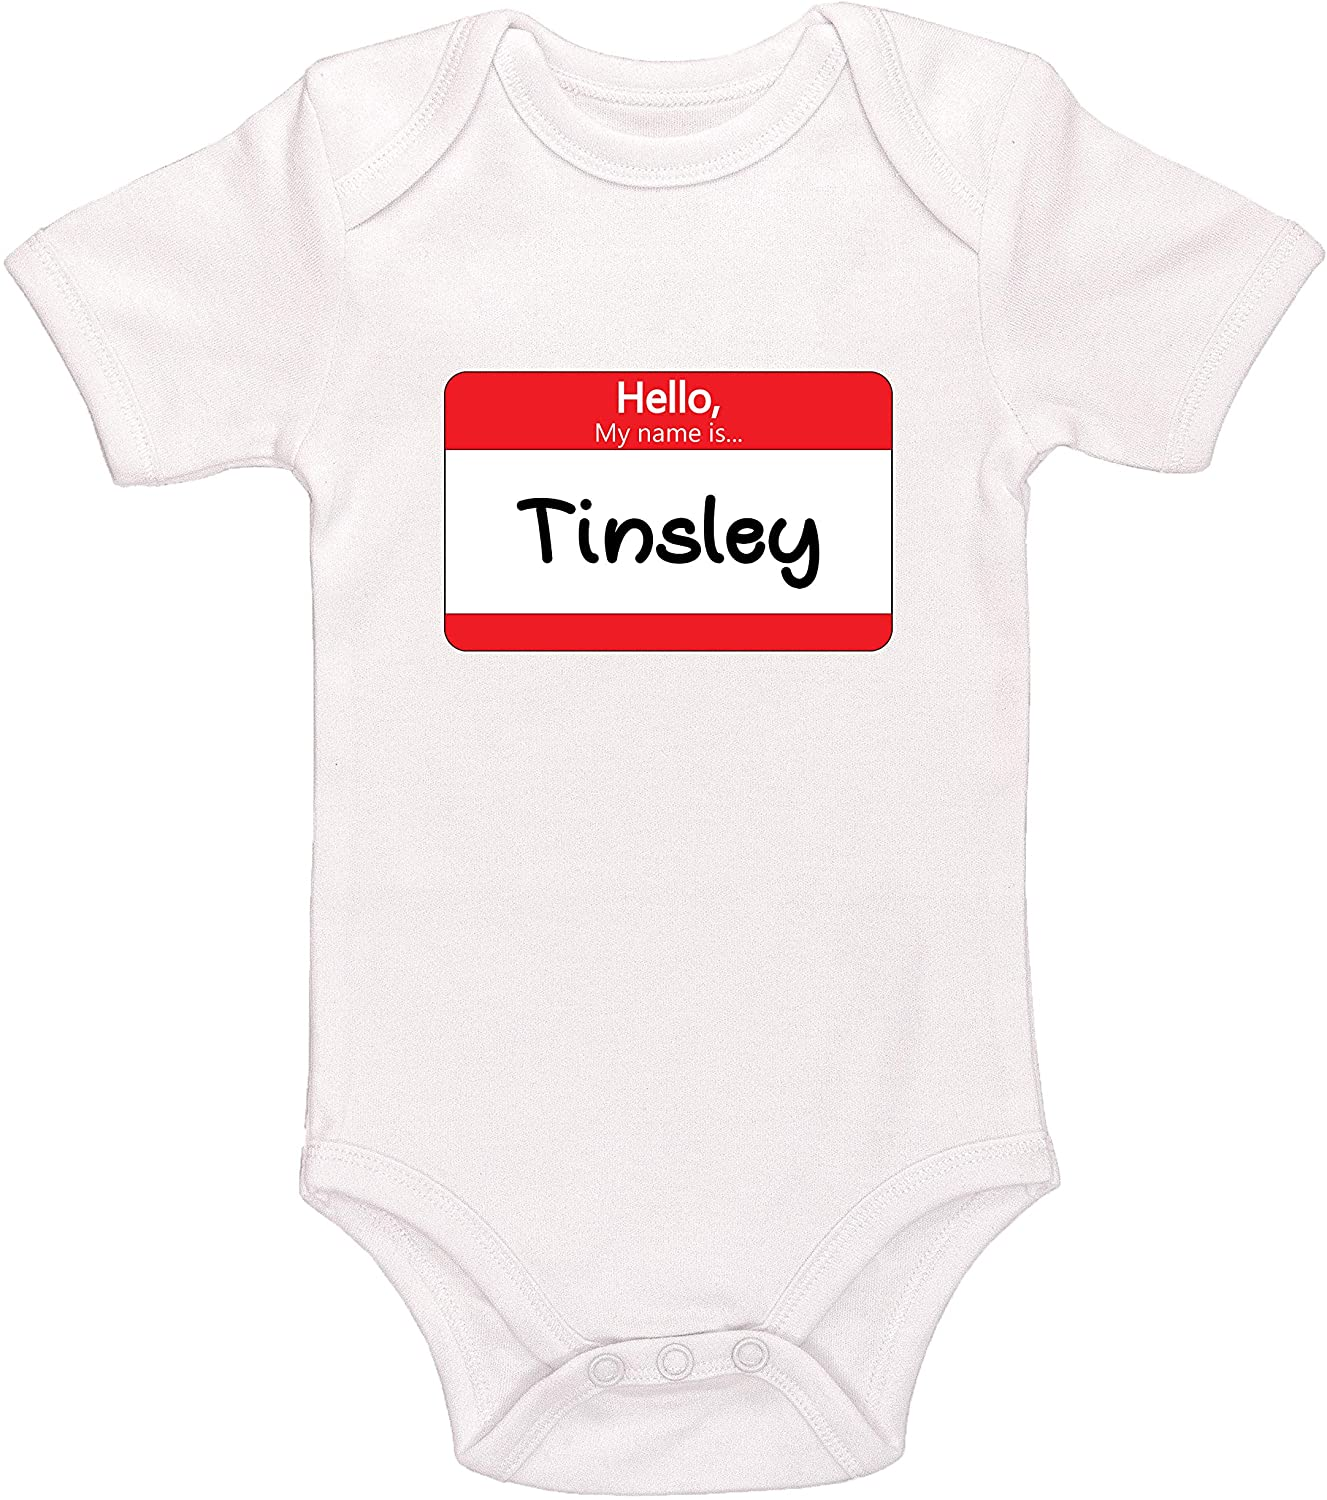 Kinacle Hello My Name is Tinsley Personalized Baby Bodysuit